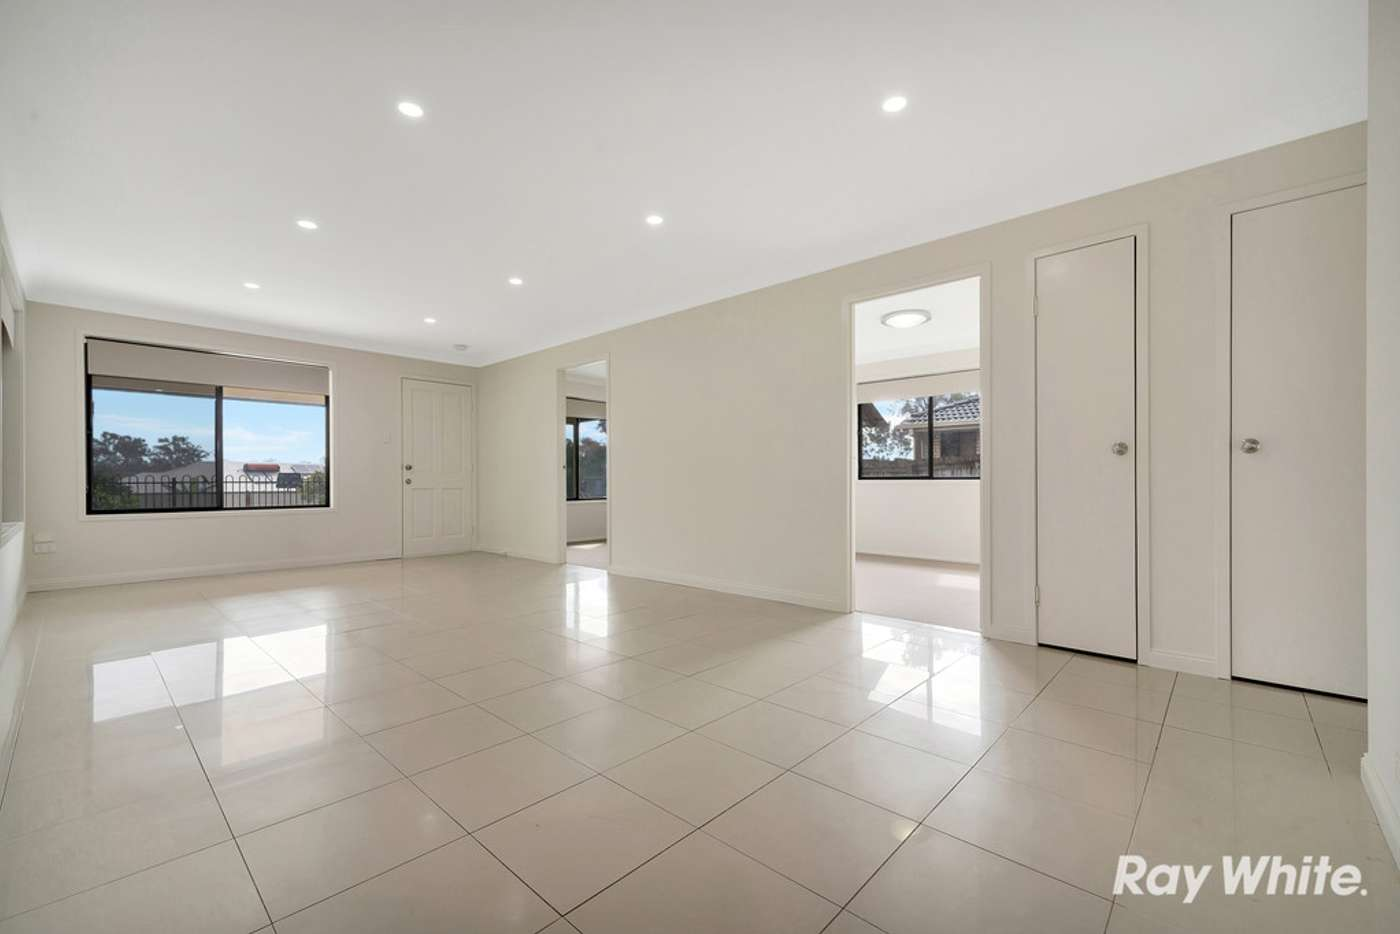 Sixth view of Homely house listing, 4 Felix Court, Crestmead QLD 4132